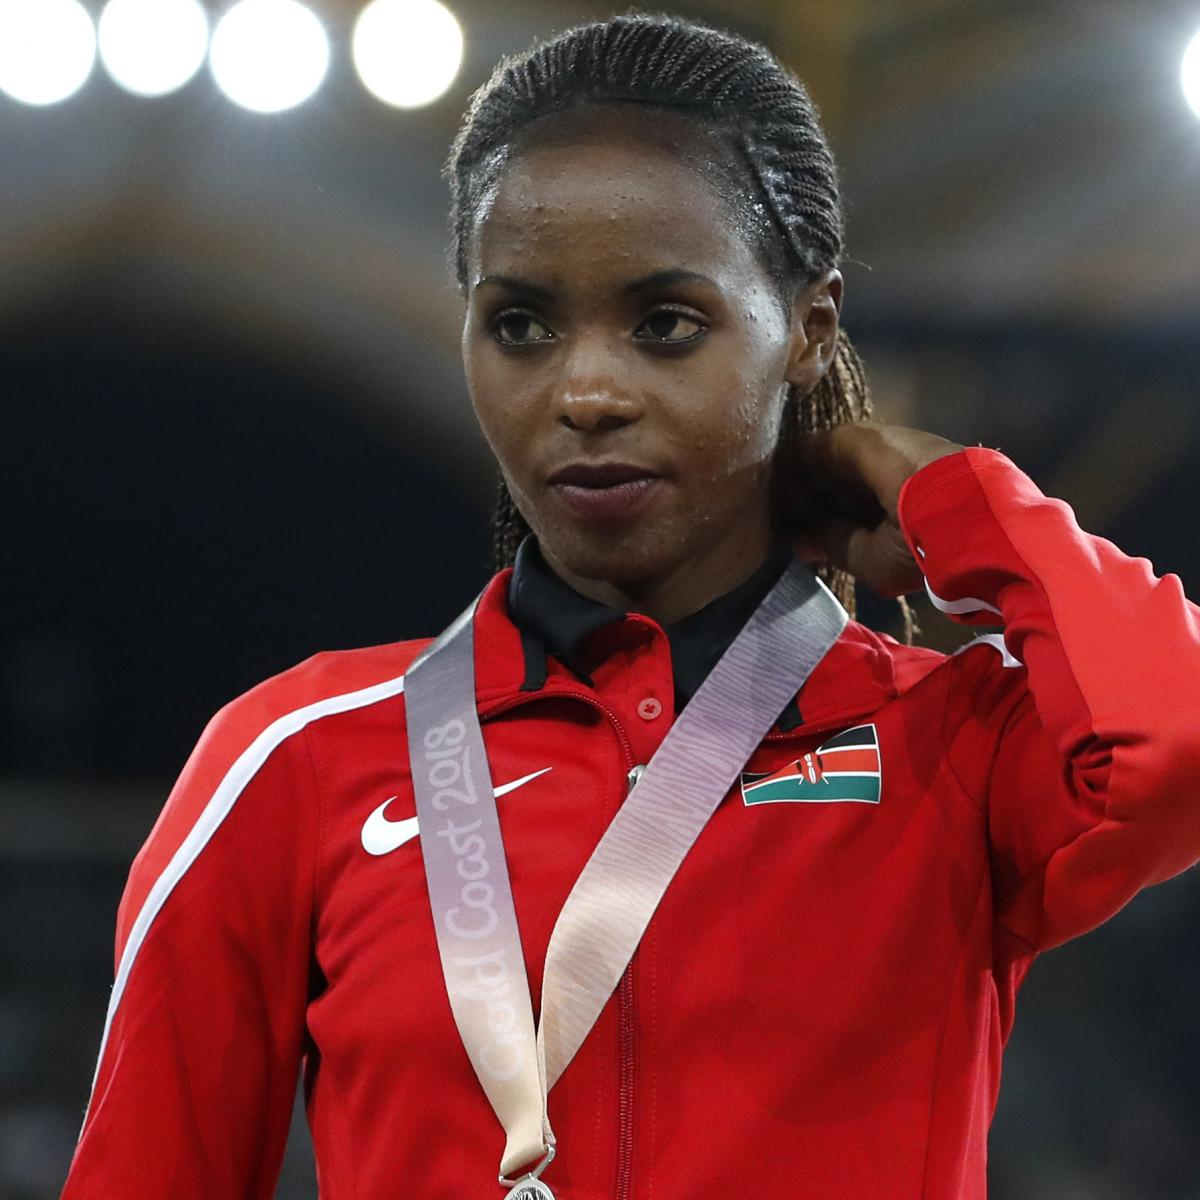 29d996091c3bc Beatrice Chepkoech Sets Women s Steeplechase 3000m World Record by 8  Seconds